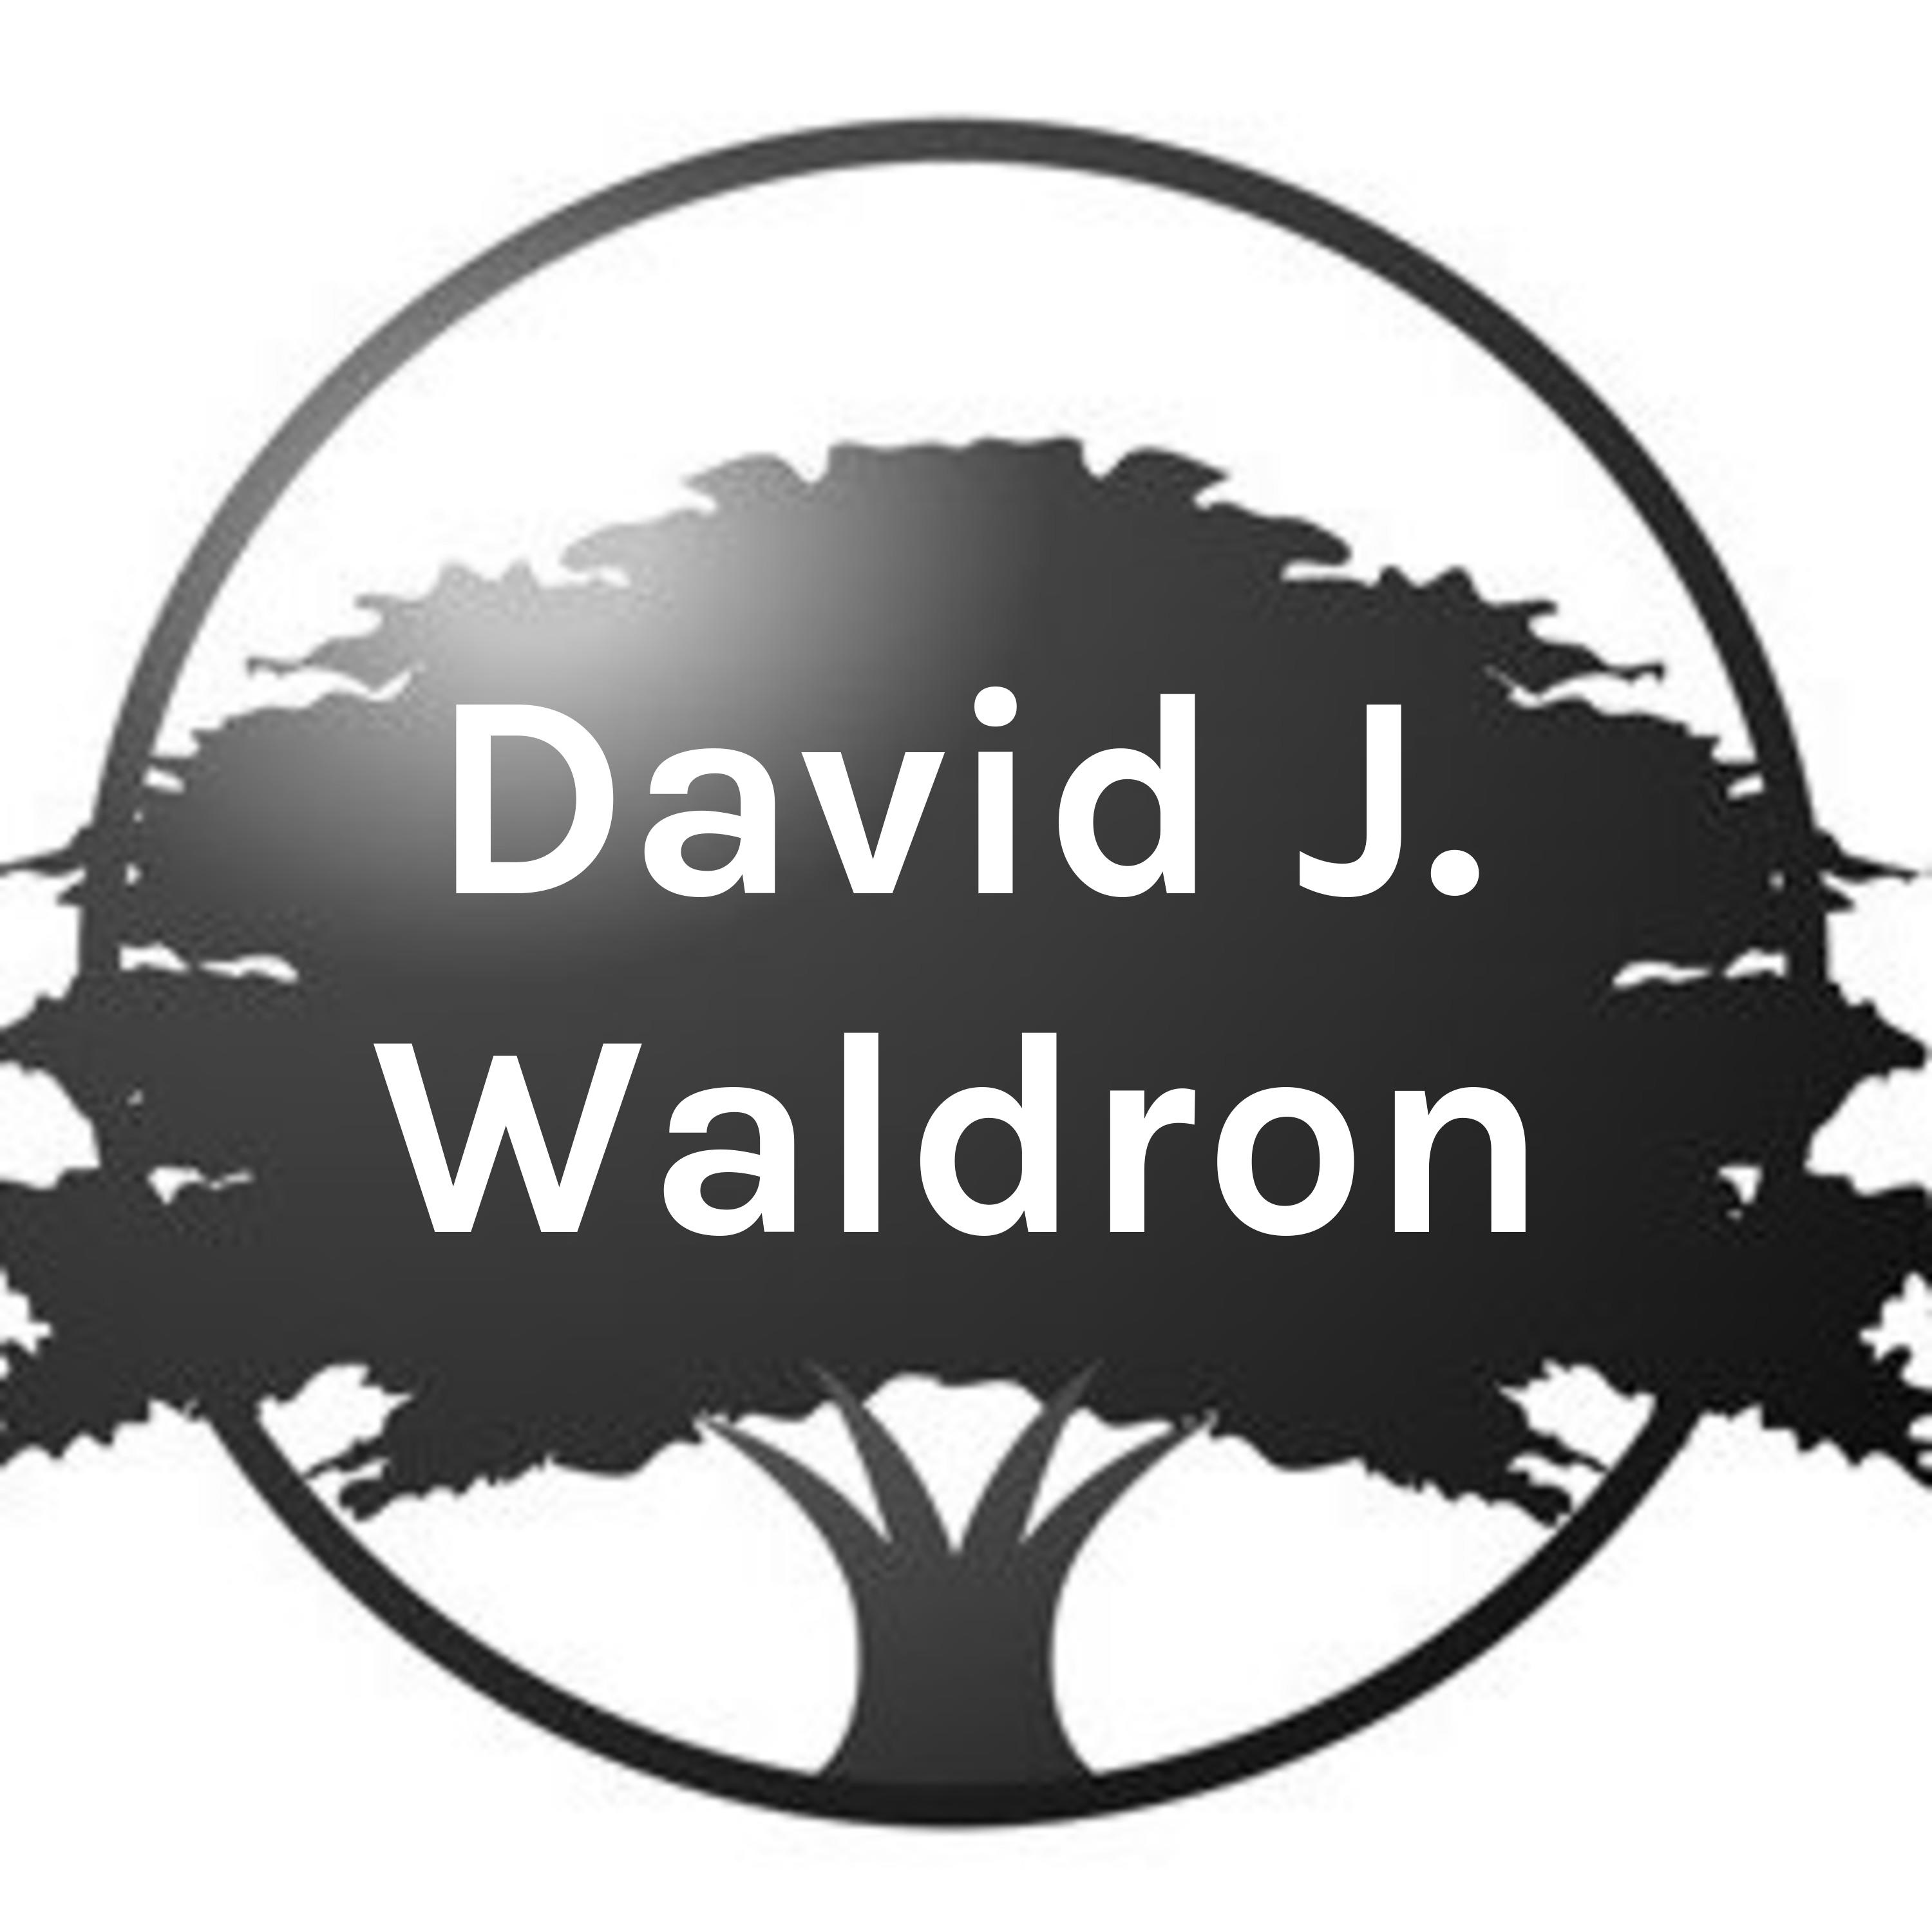 David J. Waldron